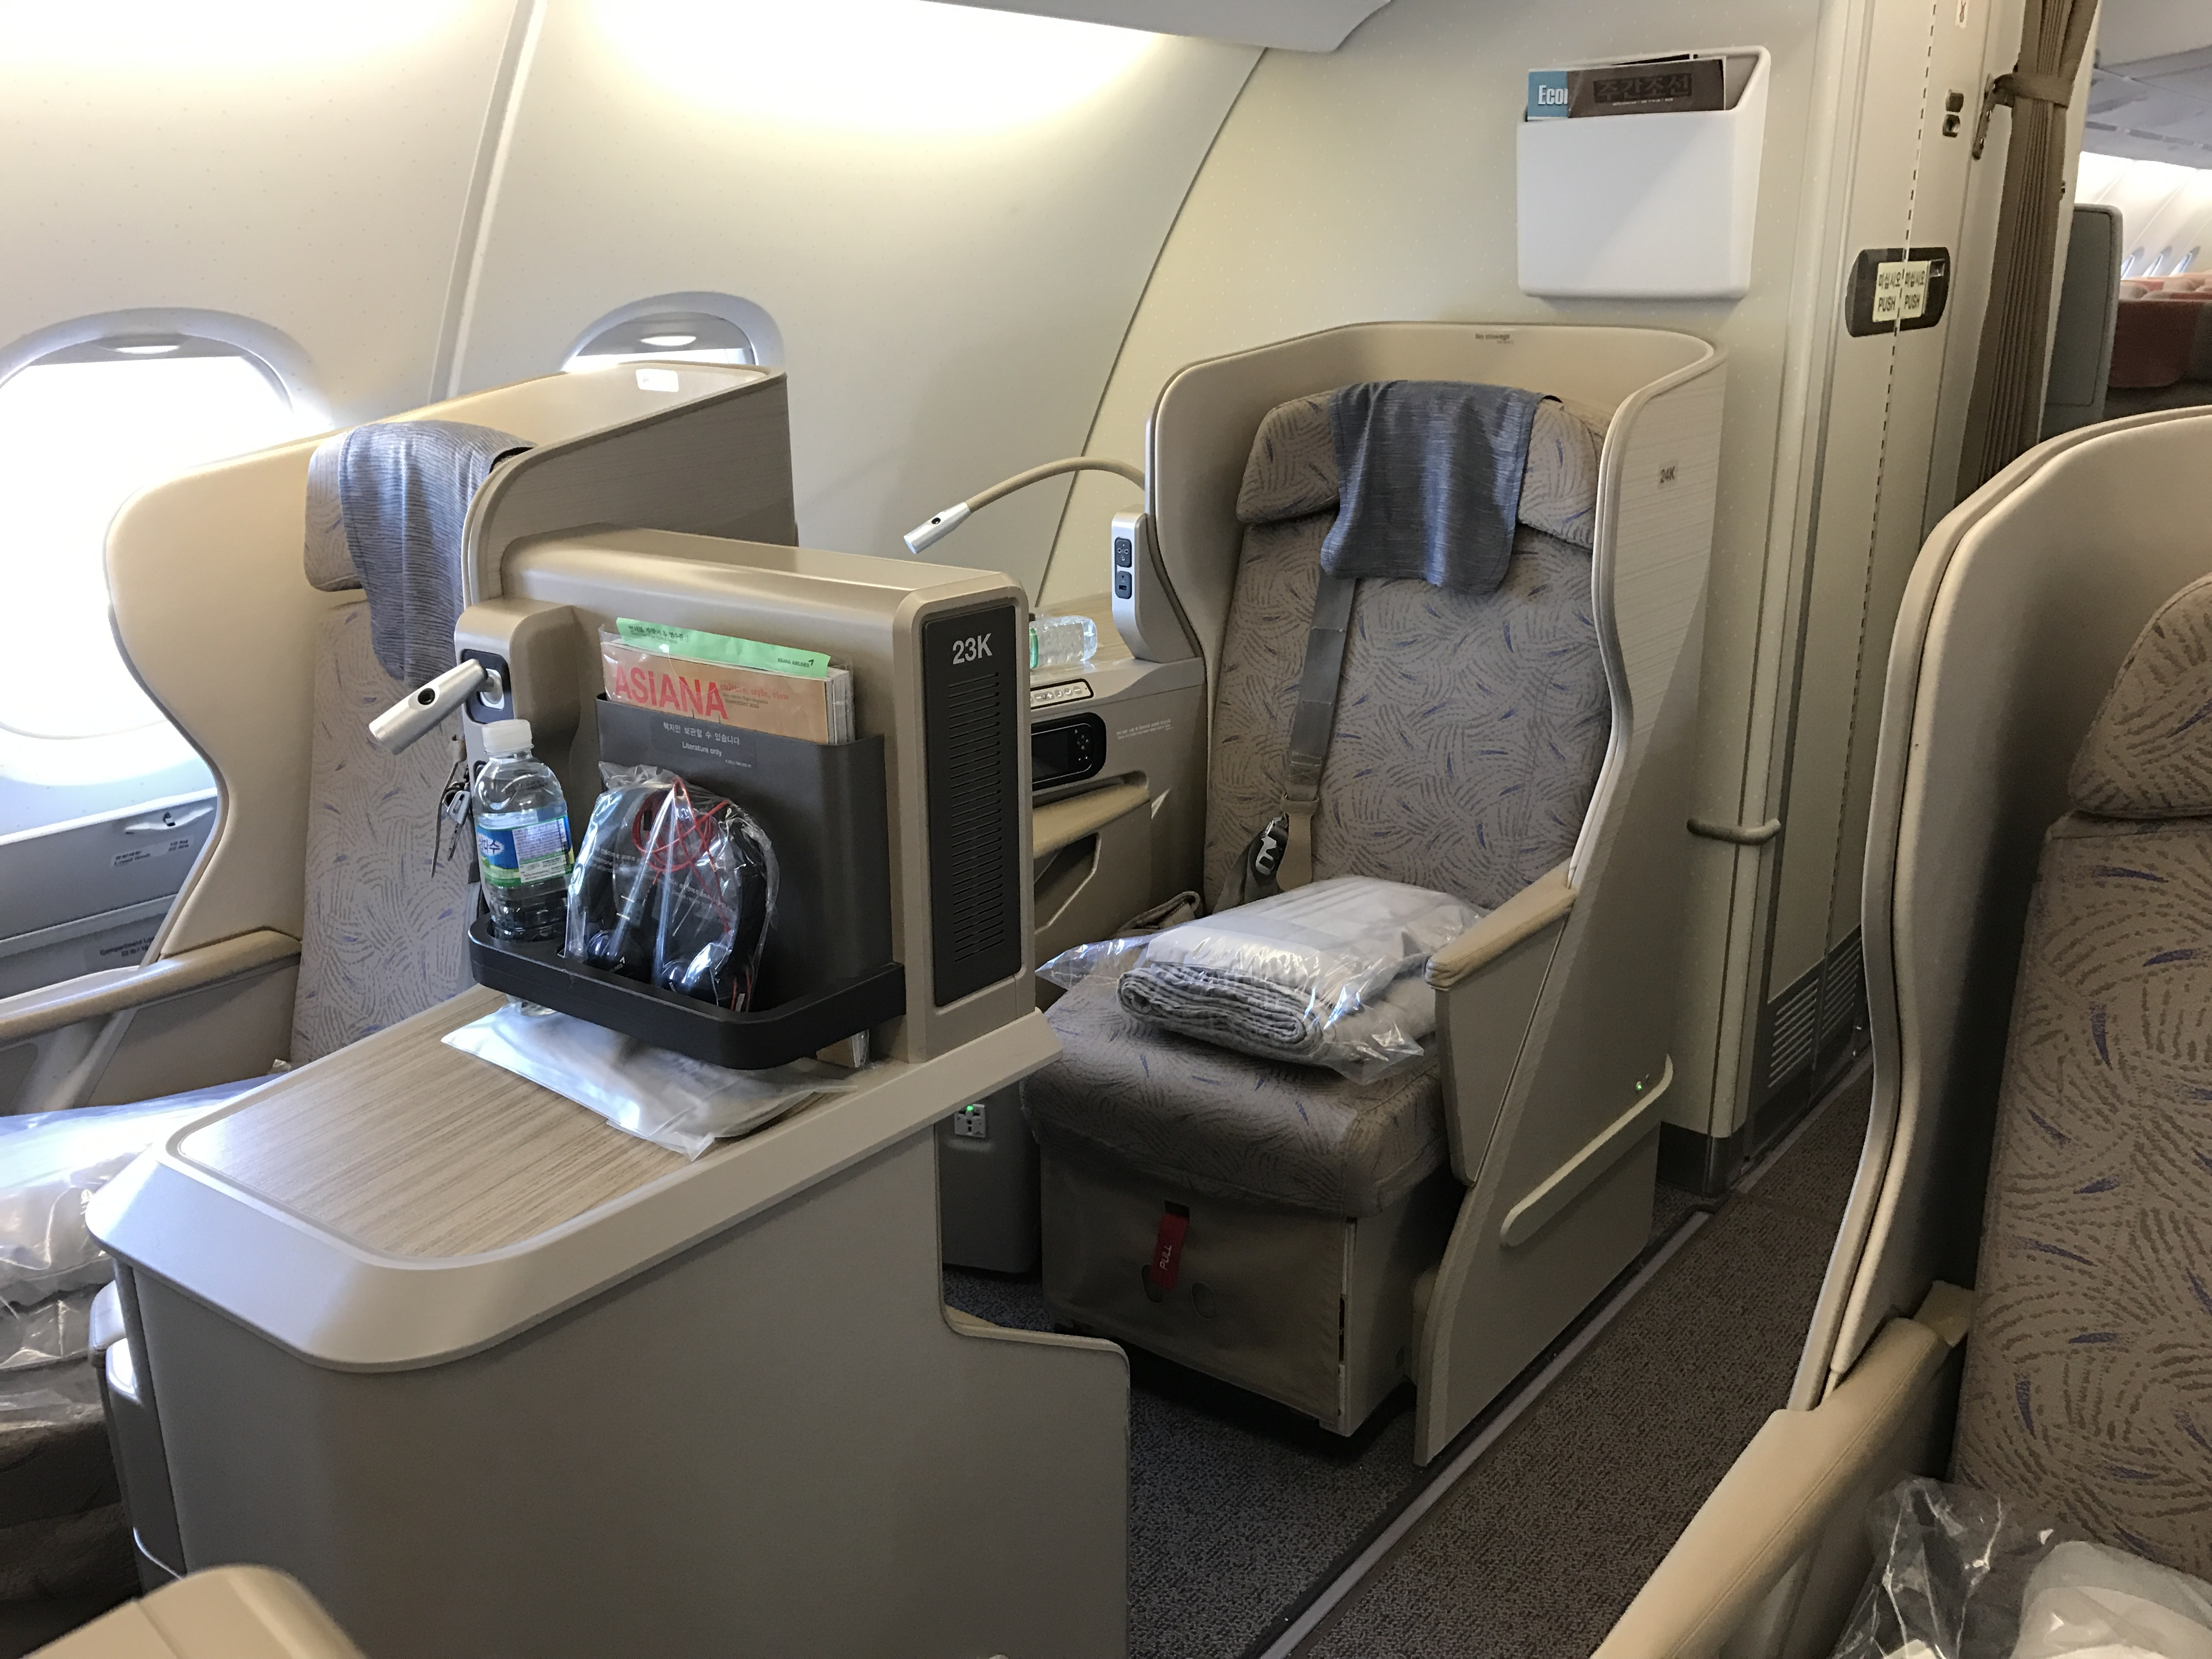 Trip Report Asiana Airlines A380 Business Class Review - New York JFK To Seoul ICN